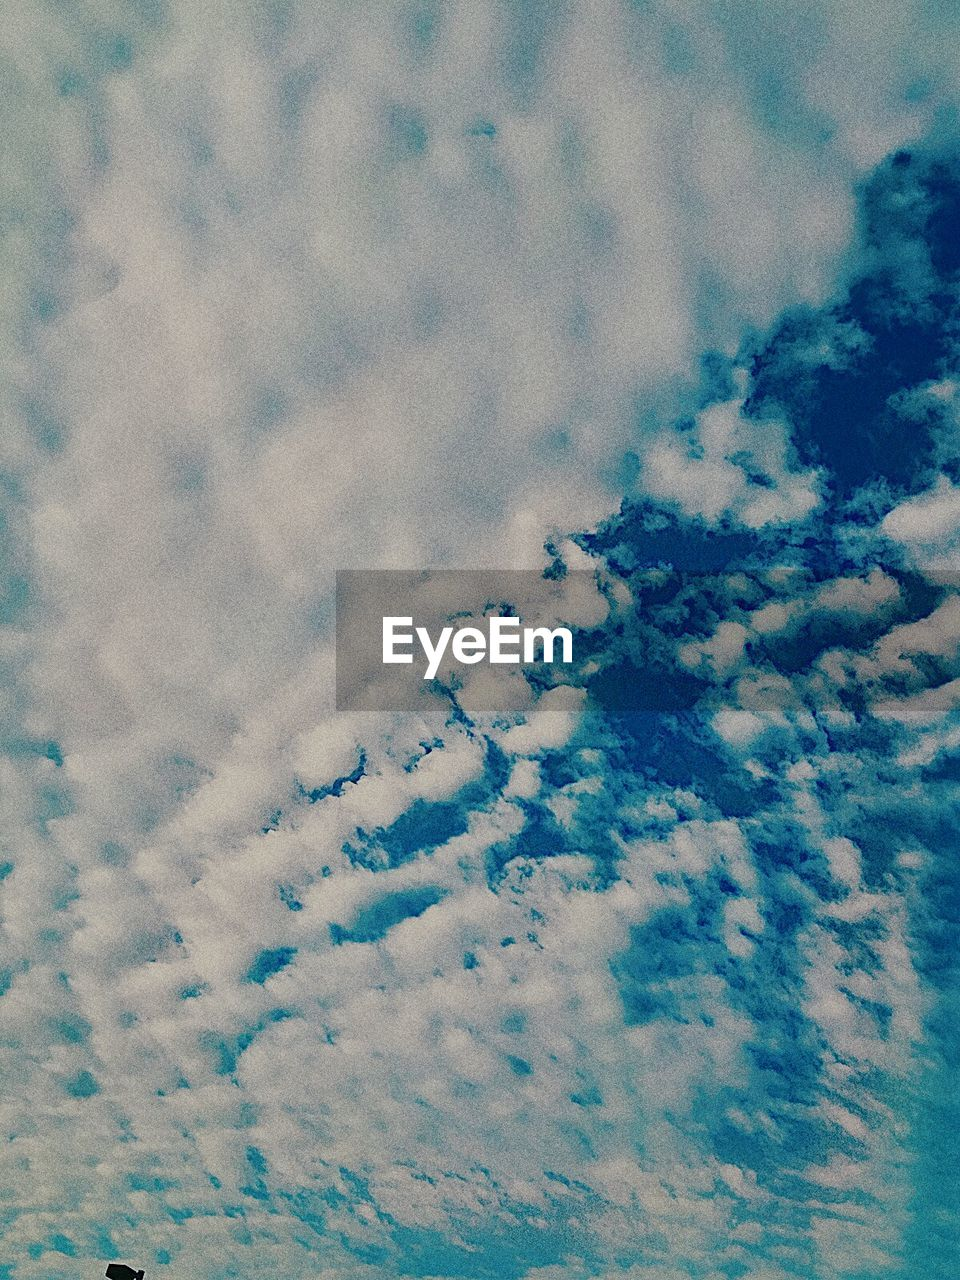 cloud - sky, sky, cloudscape, nature, beauty in nature, backgrounds, low angle view, tranquility, scenics, sky only, weather, heaven, full frame, no people, tranquil scene, day, abstract, blue, outdoors